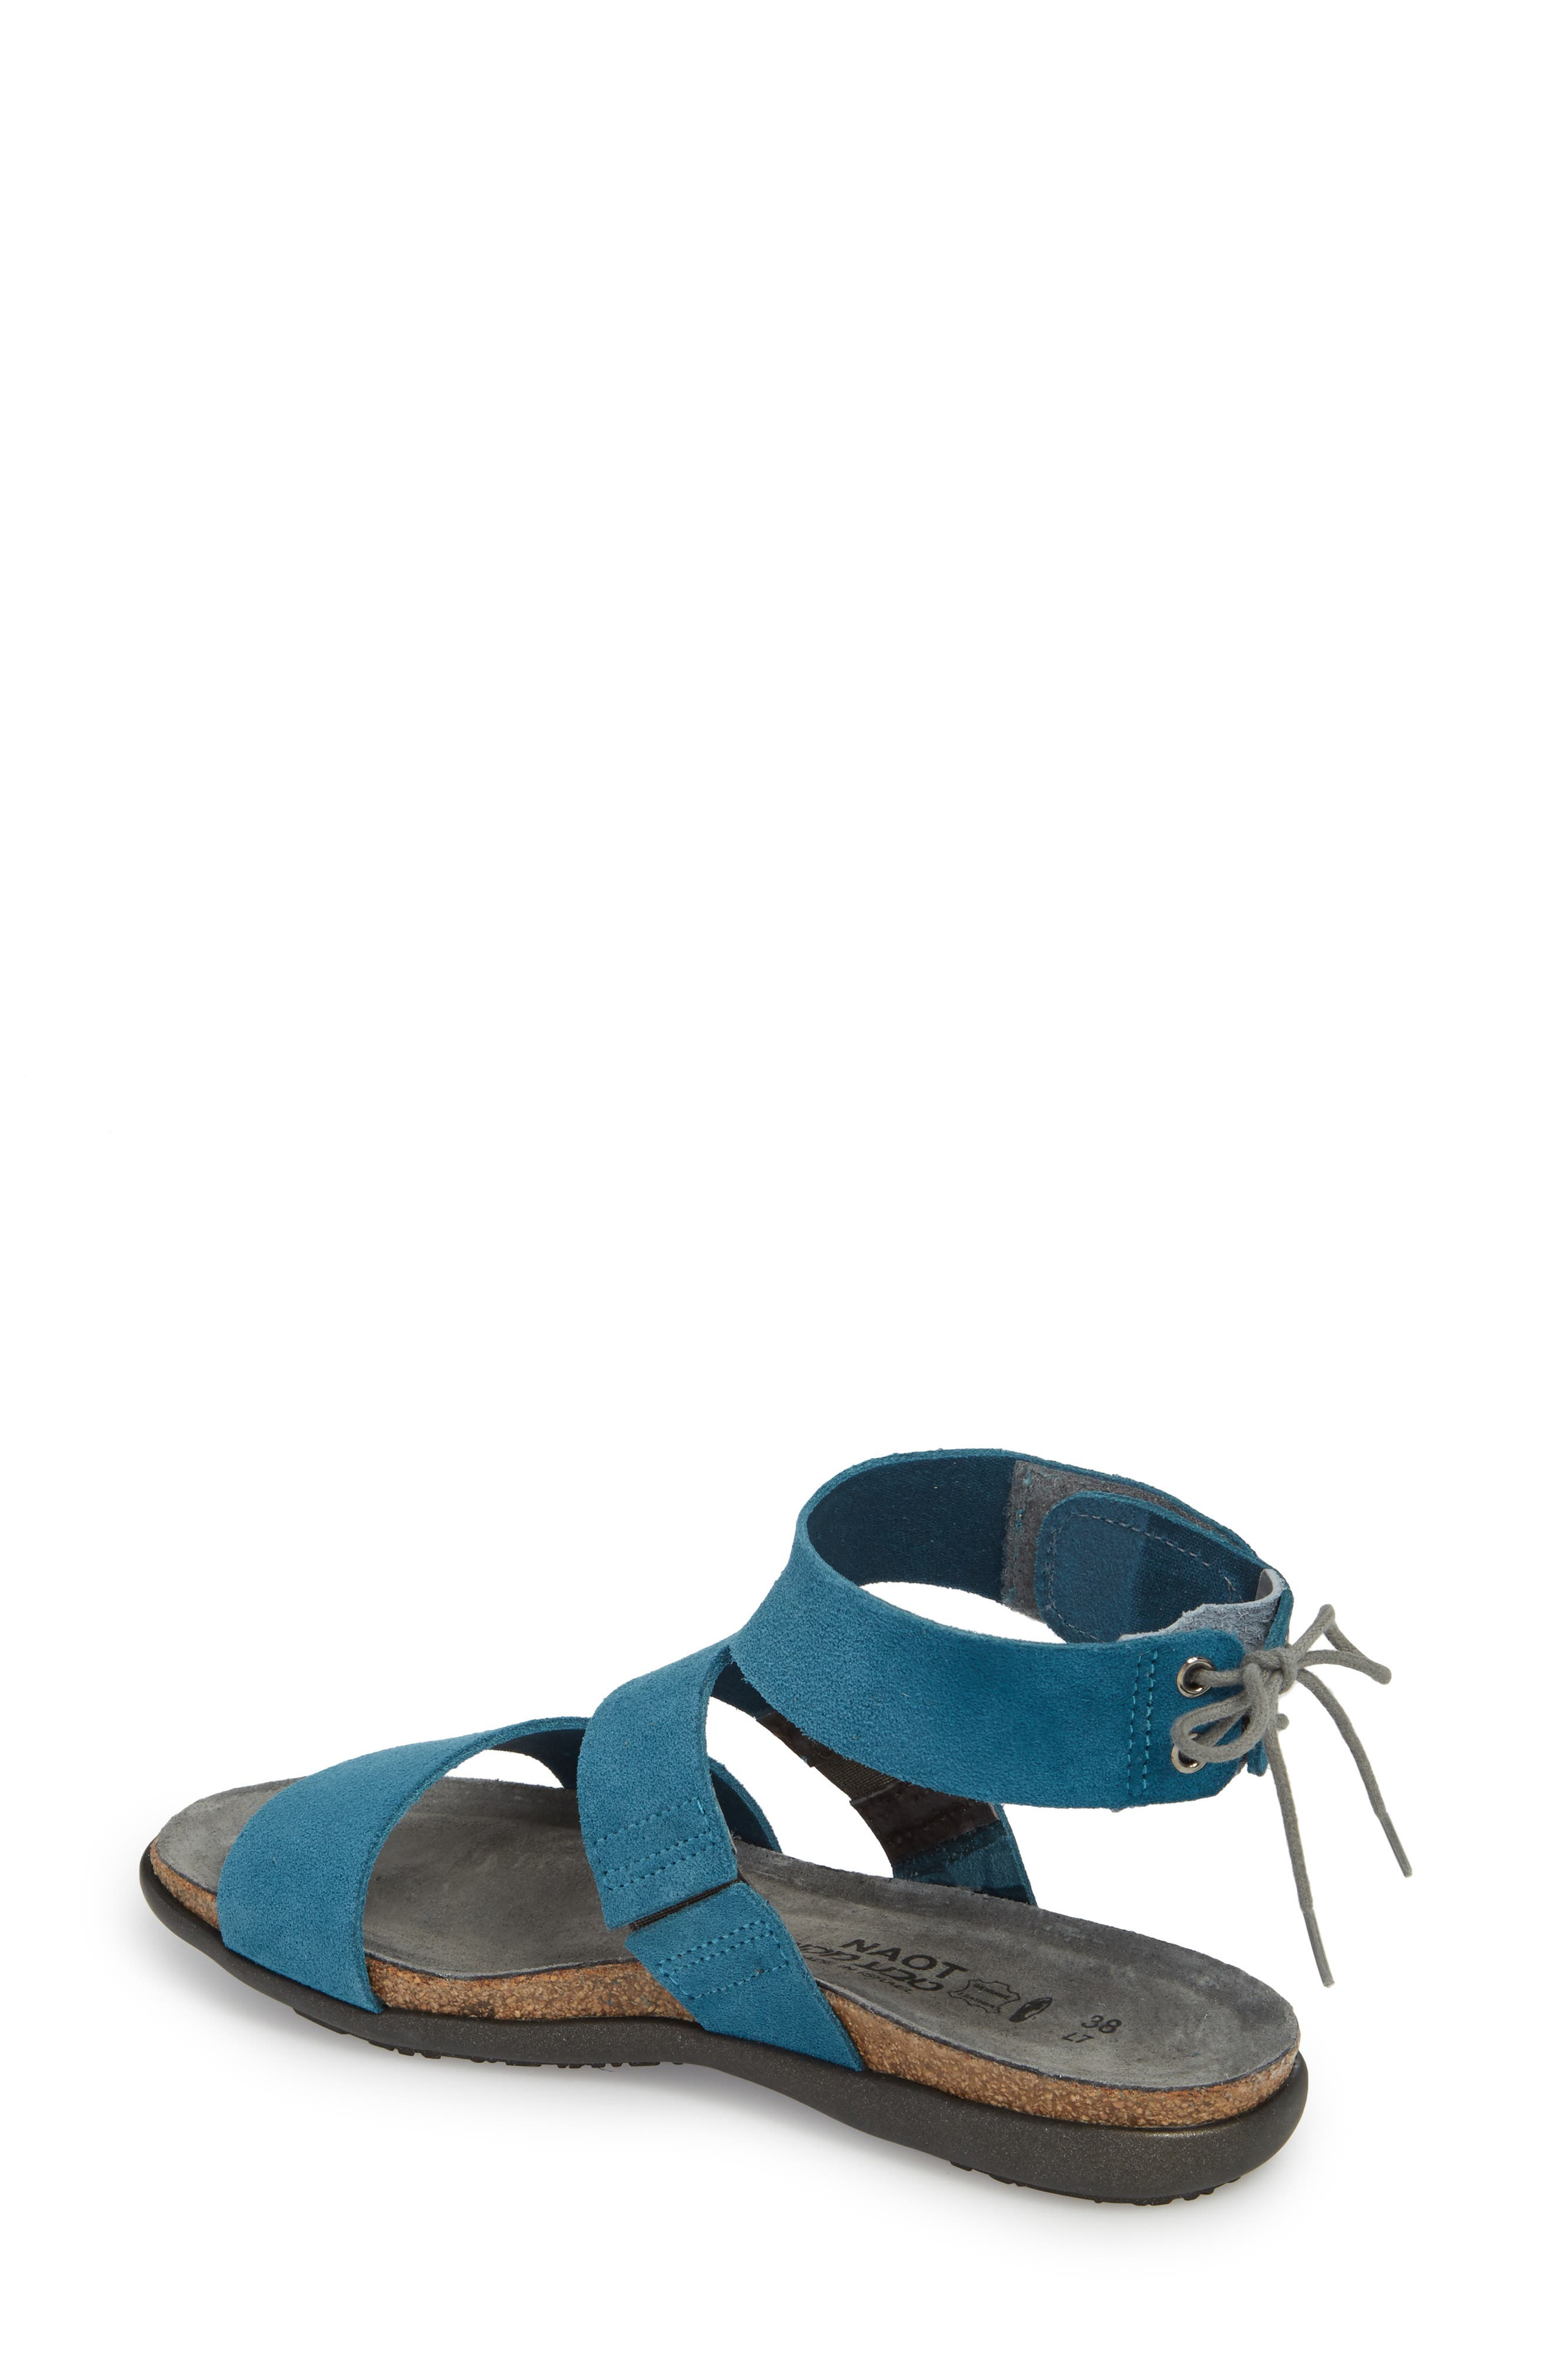 Larissa Ankle Strap Sandal,                             Alternate thumbnail 8, color,